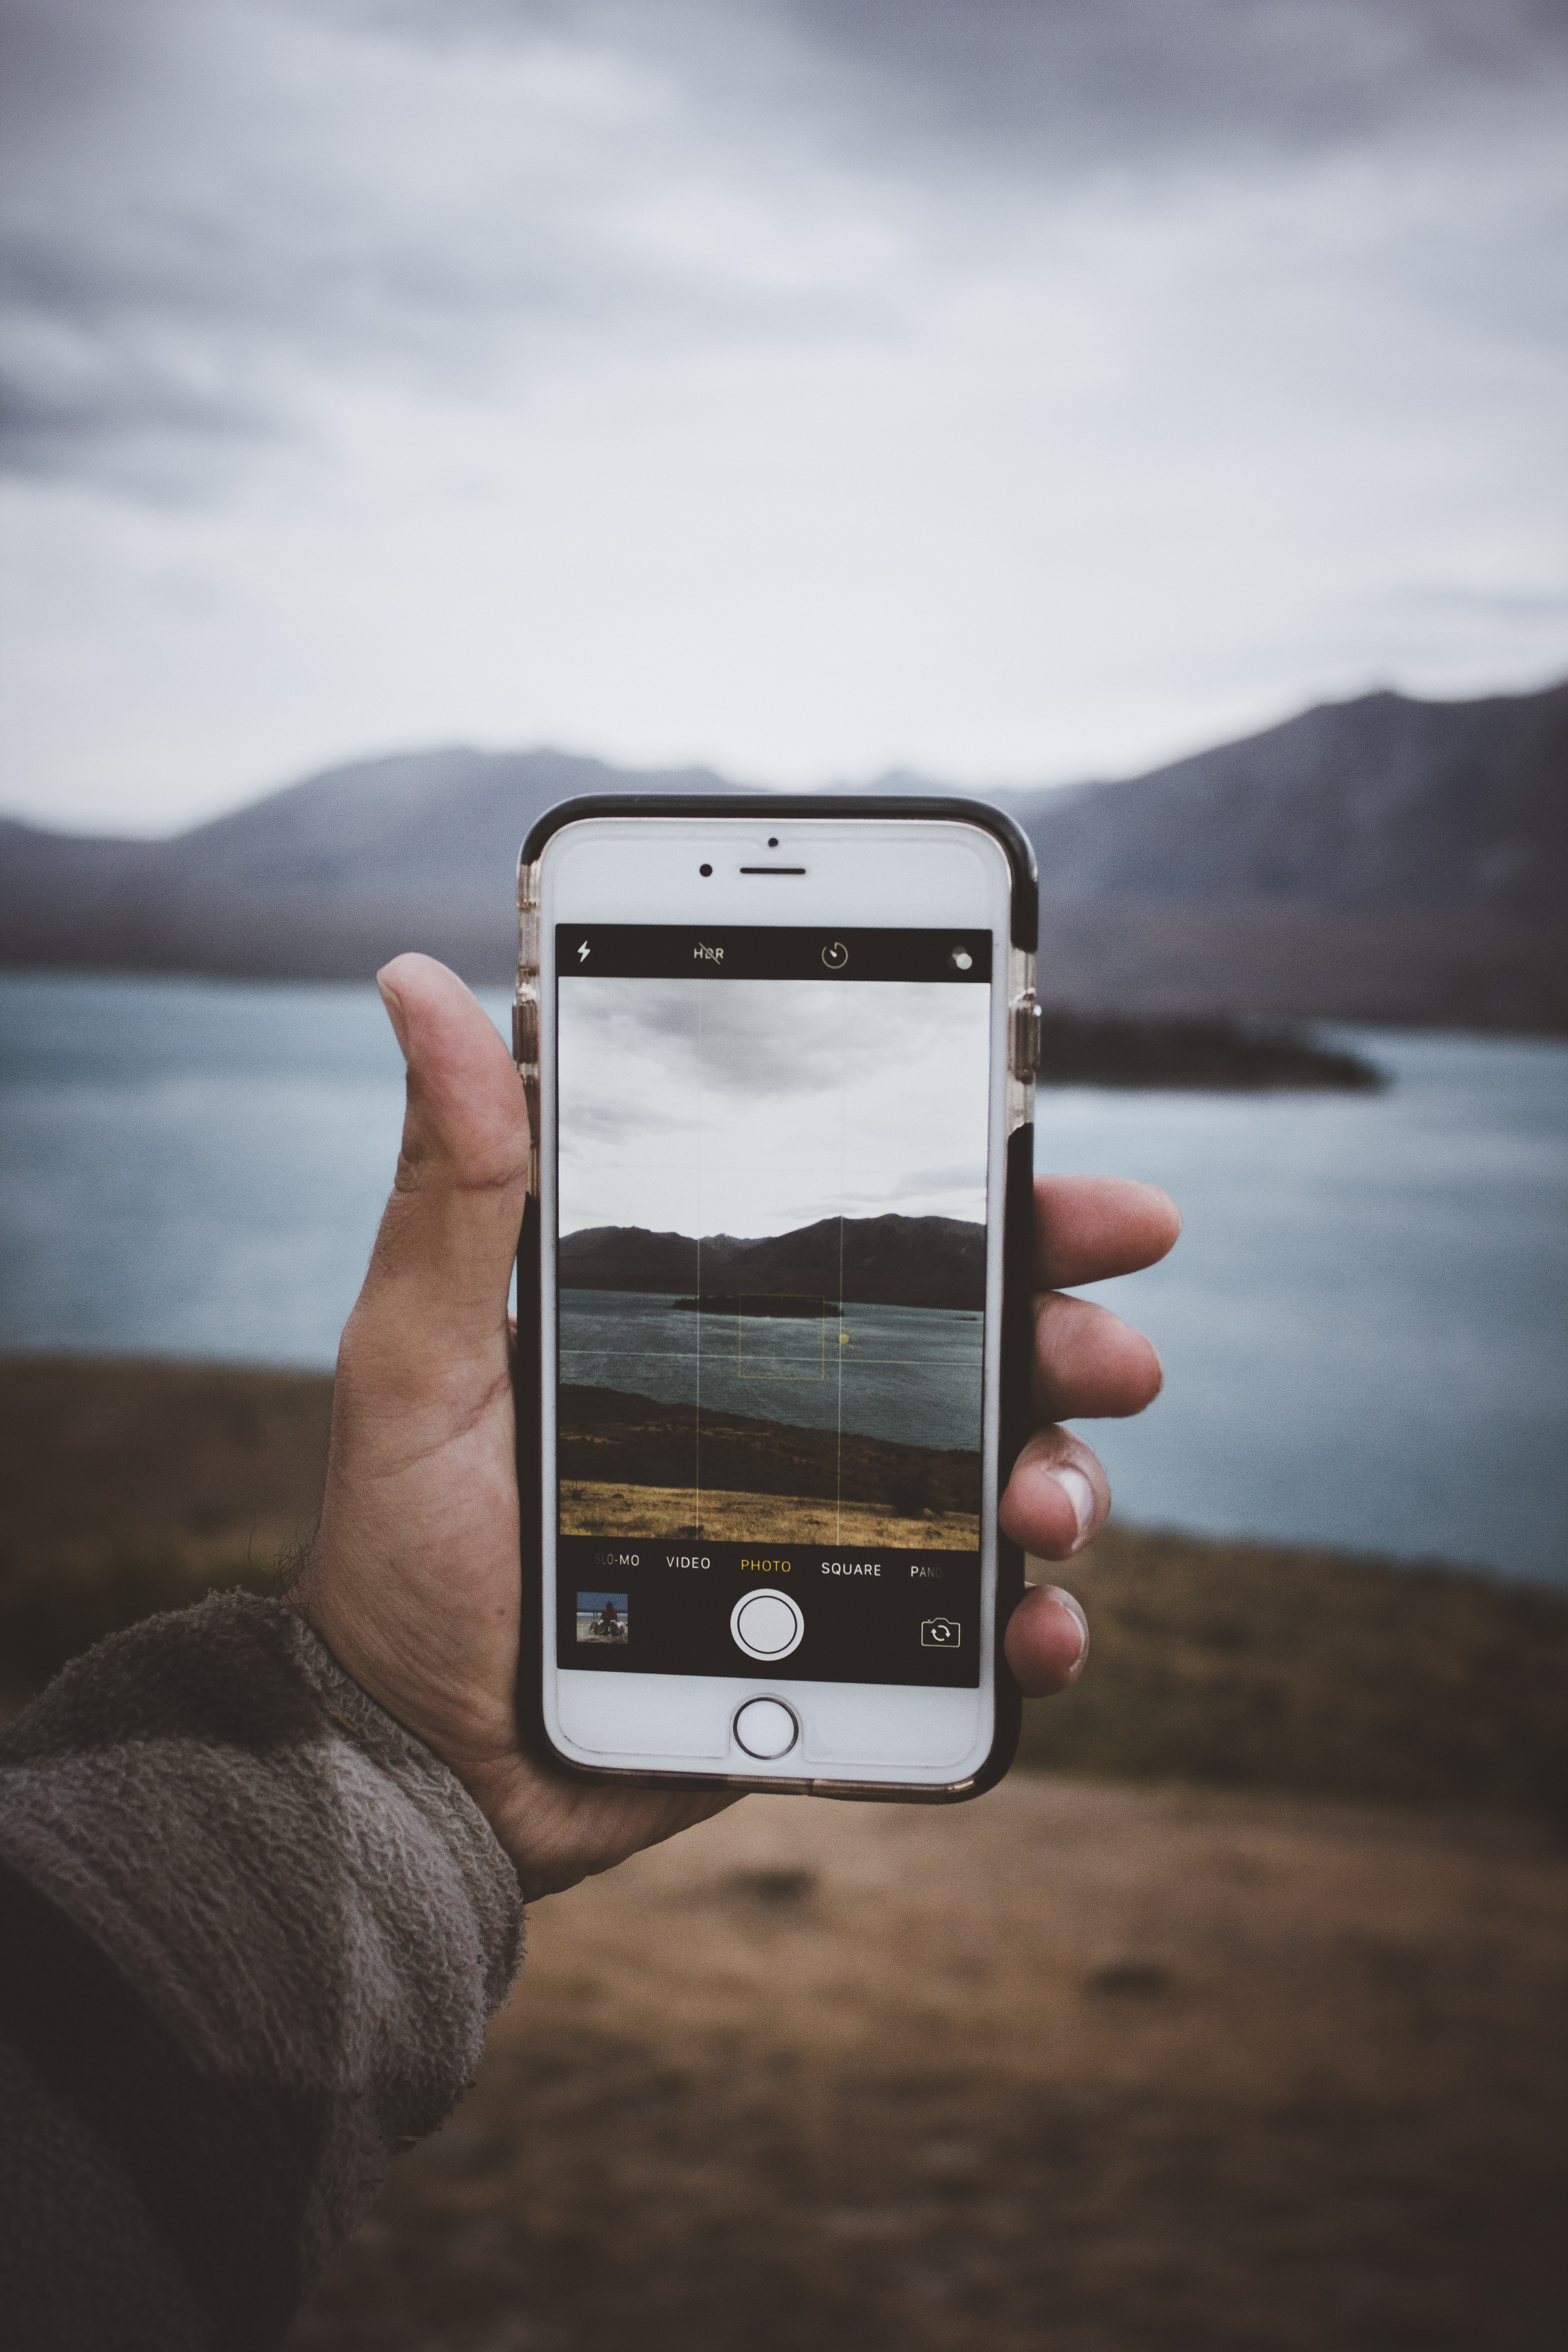 person holding gold iPhone 6 taking a photo of lake surrounded island during daytime